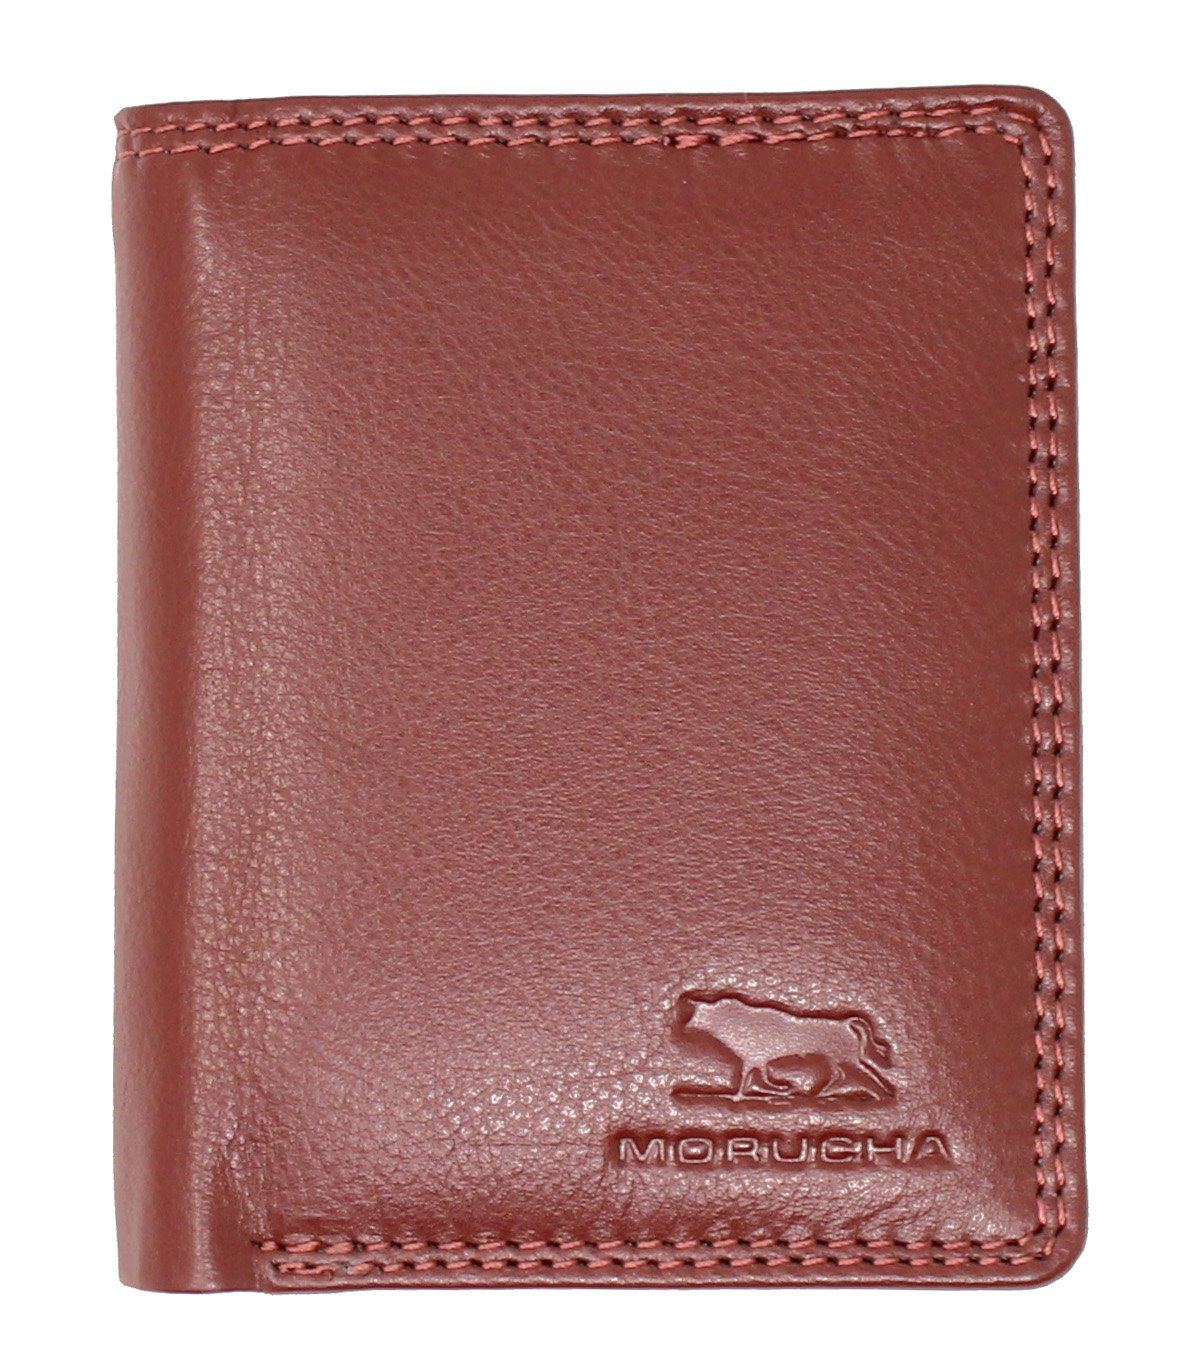 MORUCHA Antique Red Compact Trifold Wallet For Mens | Genuine Soft Nappa Leather RFID Blocking | Zipped Pocket | Designed For Up To 6 Cards, ID, Coins And Cash | Gift Boxed M-45